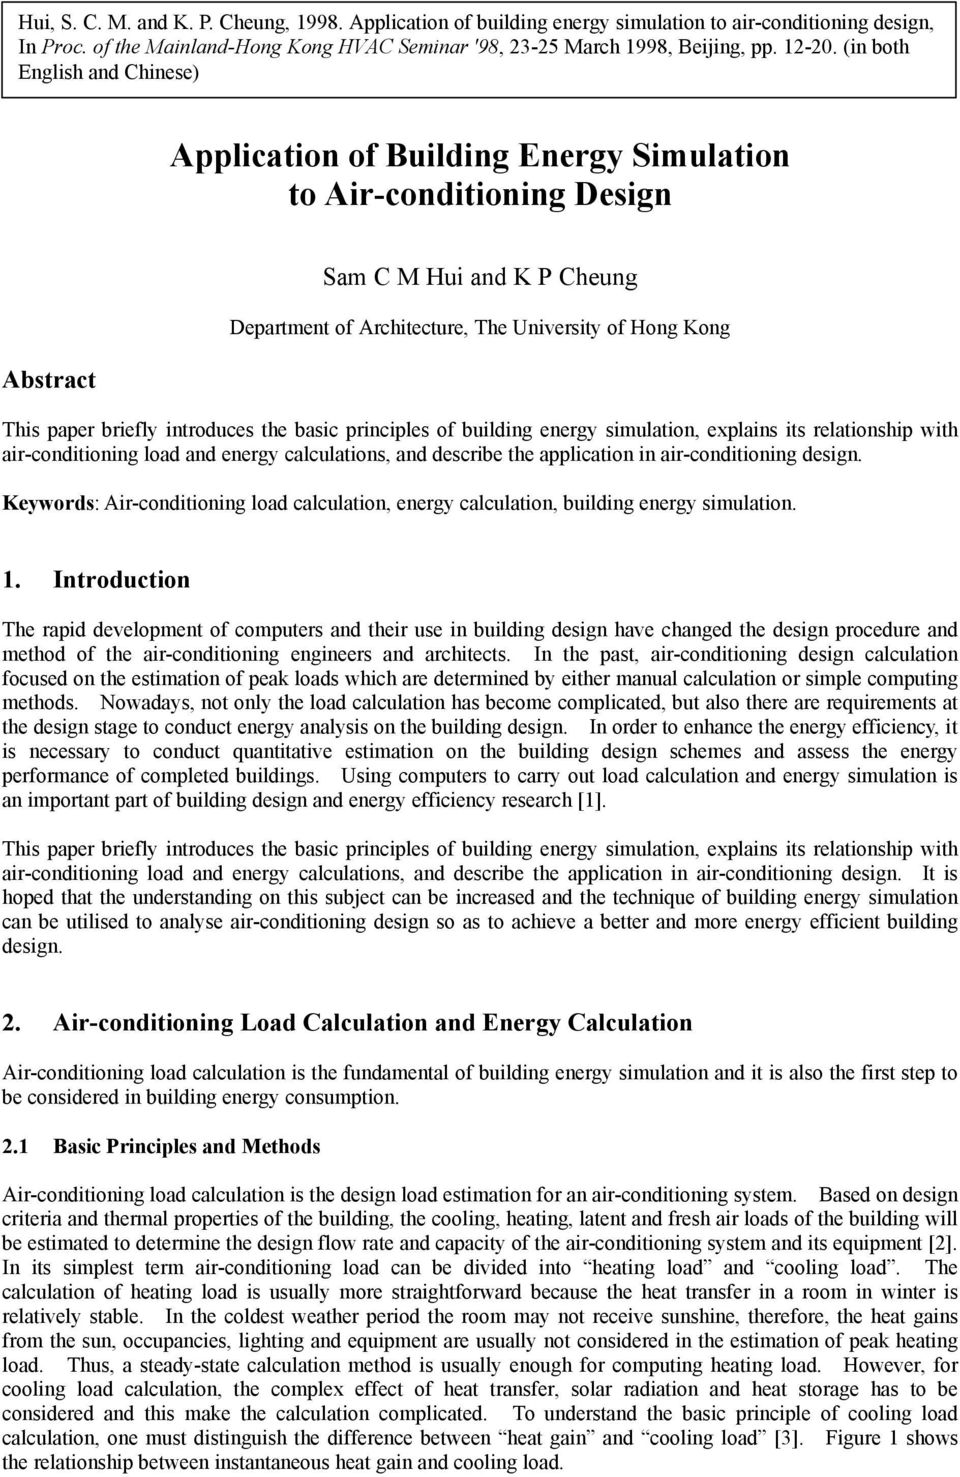 paper briefly introduces the basic principles of building energy simulation, explains its relationship with air-conditioning load and energy calculations, and describe the application in